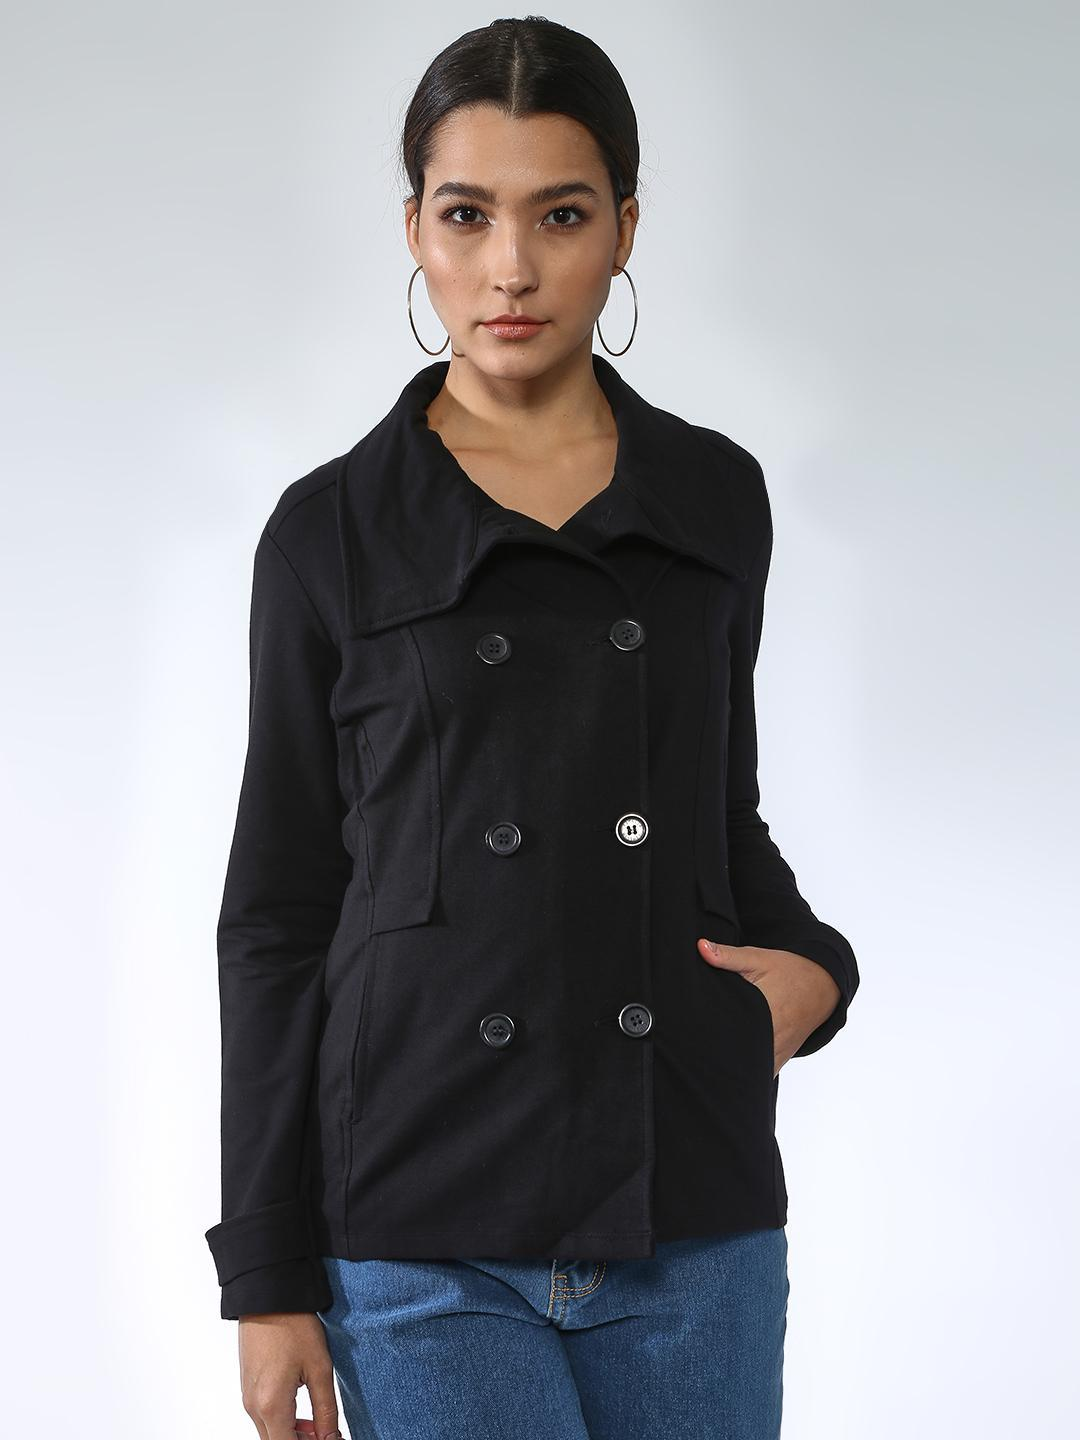 Femella Black Solid Double-Breasted Jacket 1